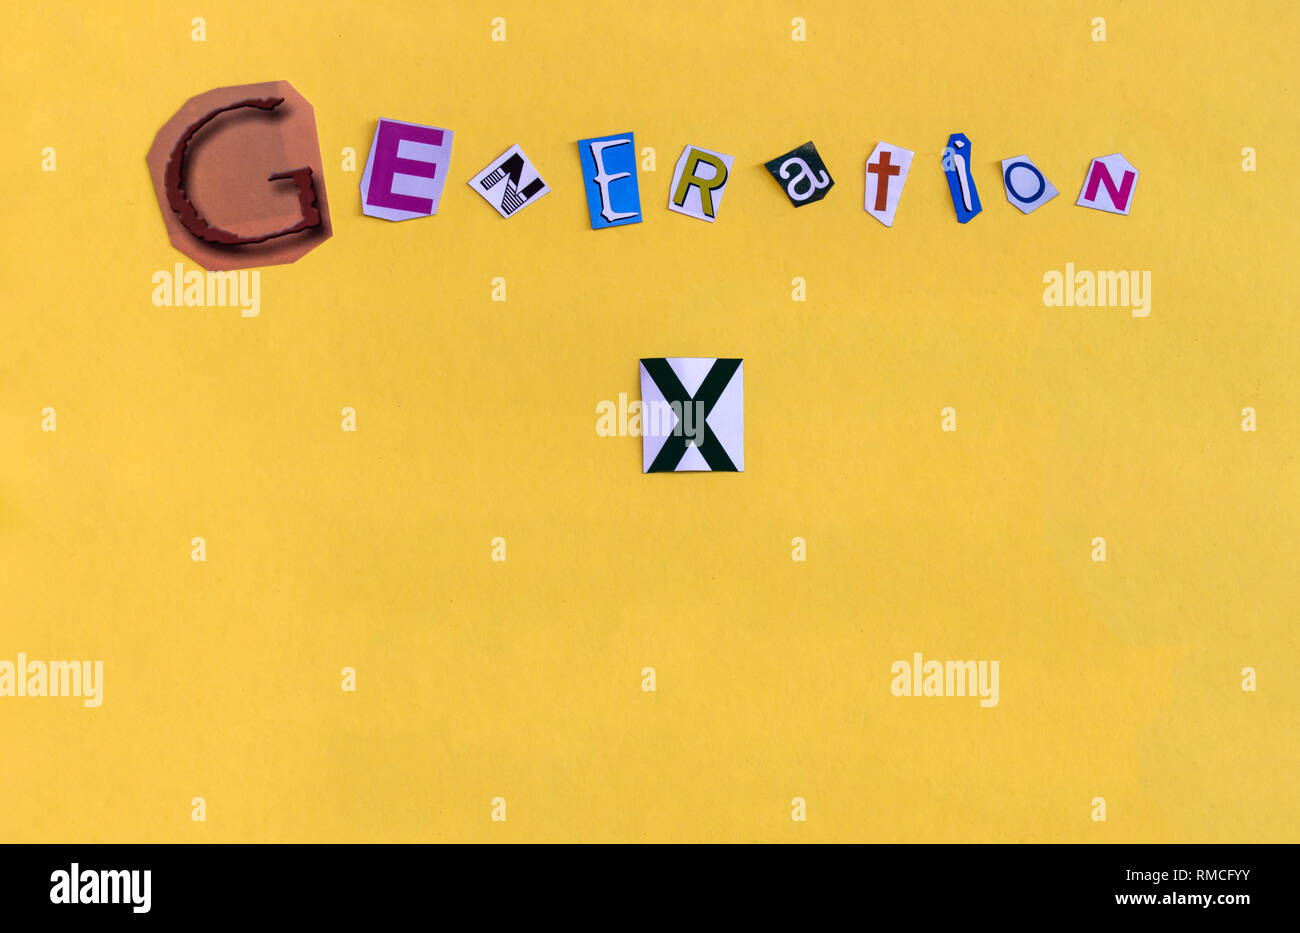 Word 'Generation X' formed with chaotic cut letters. The generation of people born between 1960 and 1980 also called lost generation. Copy space below - Stock Image